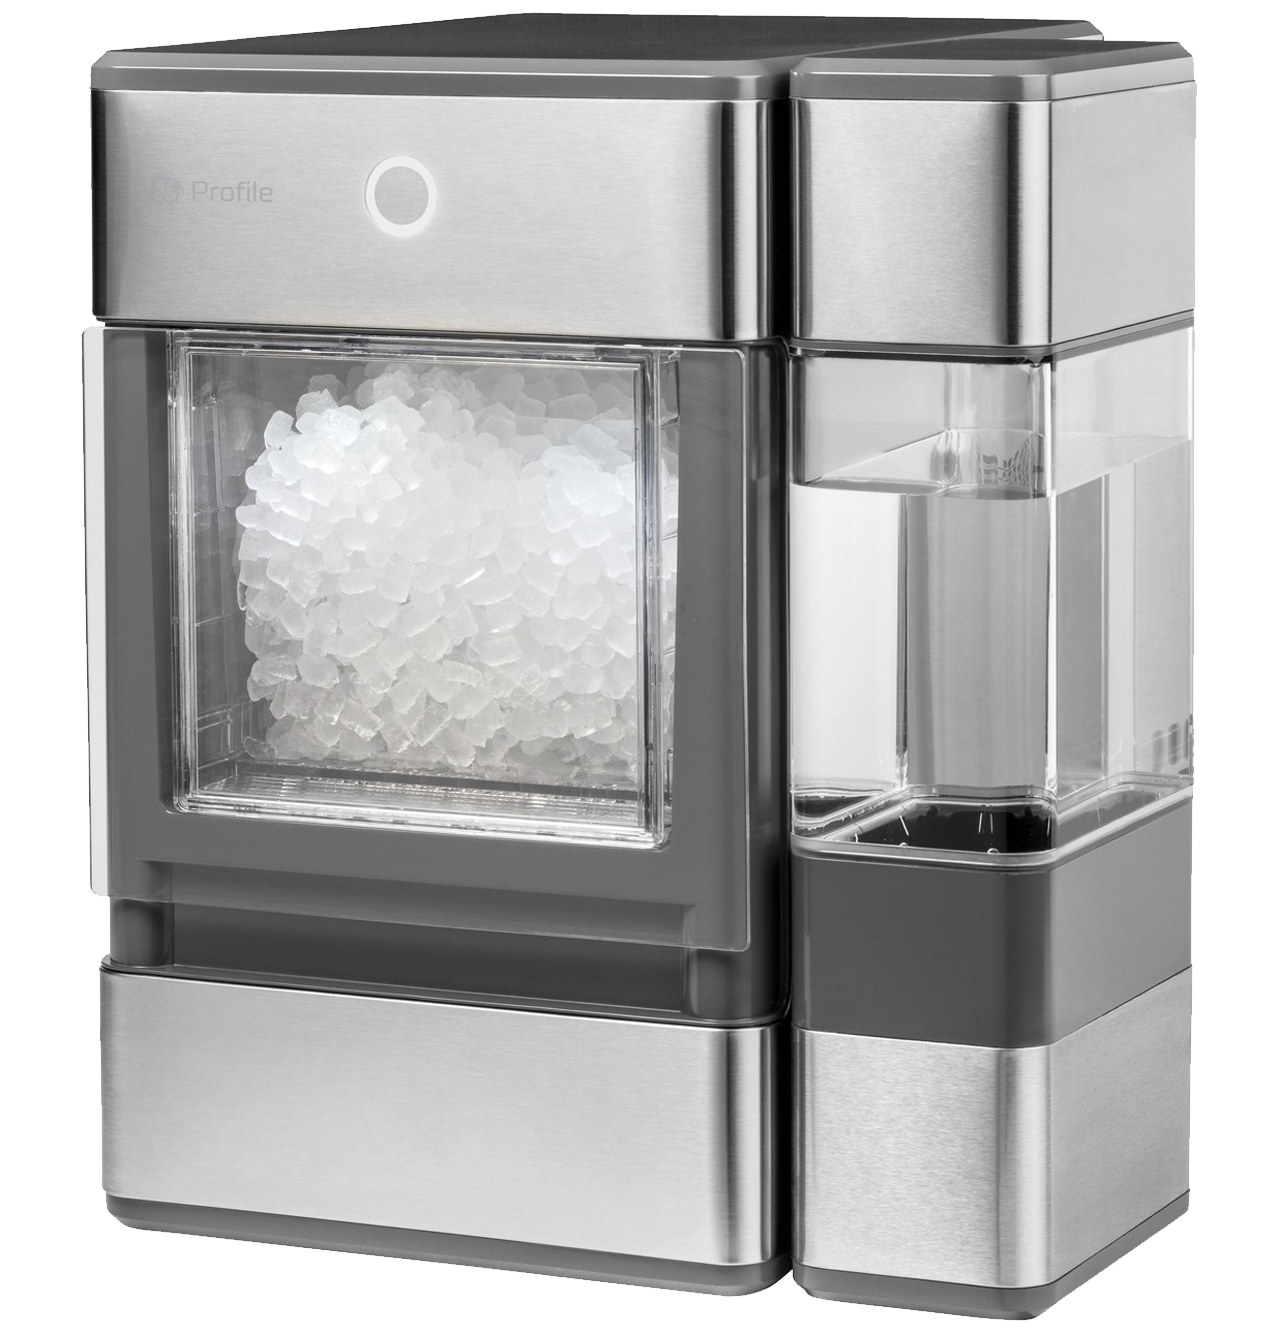 Opal Ice Maker Soft Chewable Ice At Home Ge Appliances